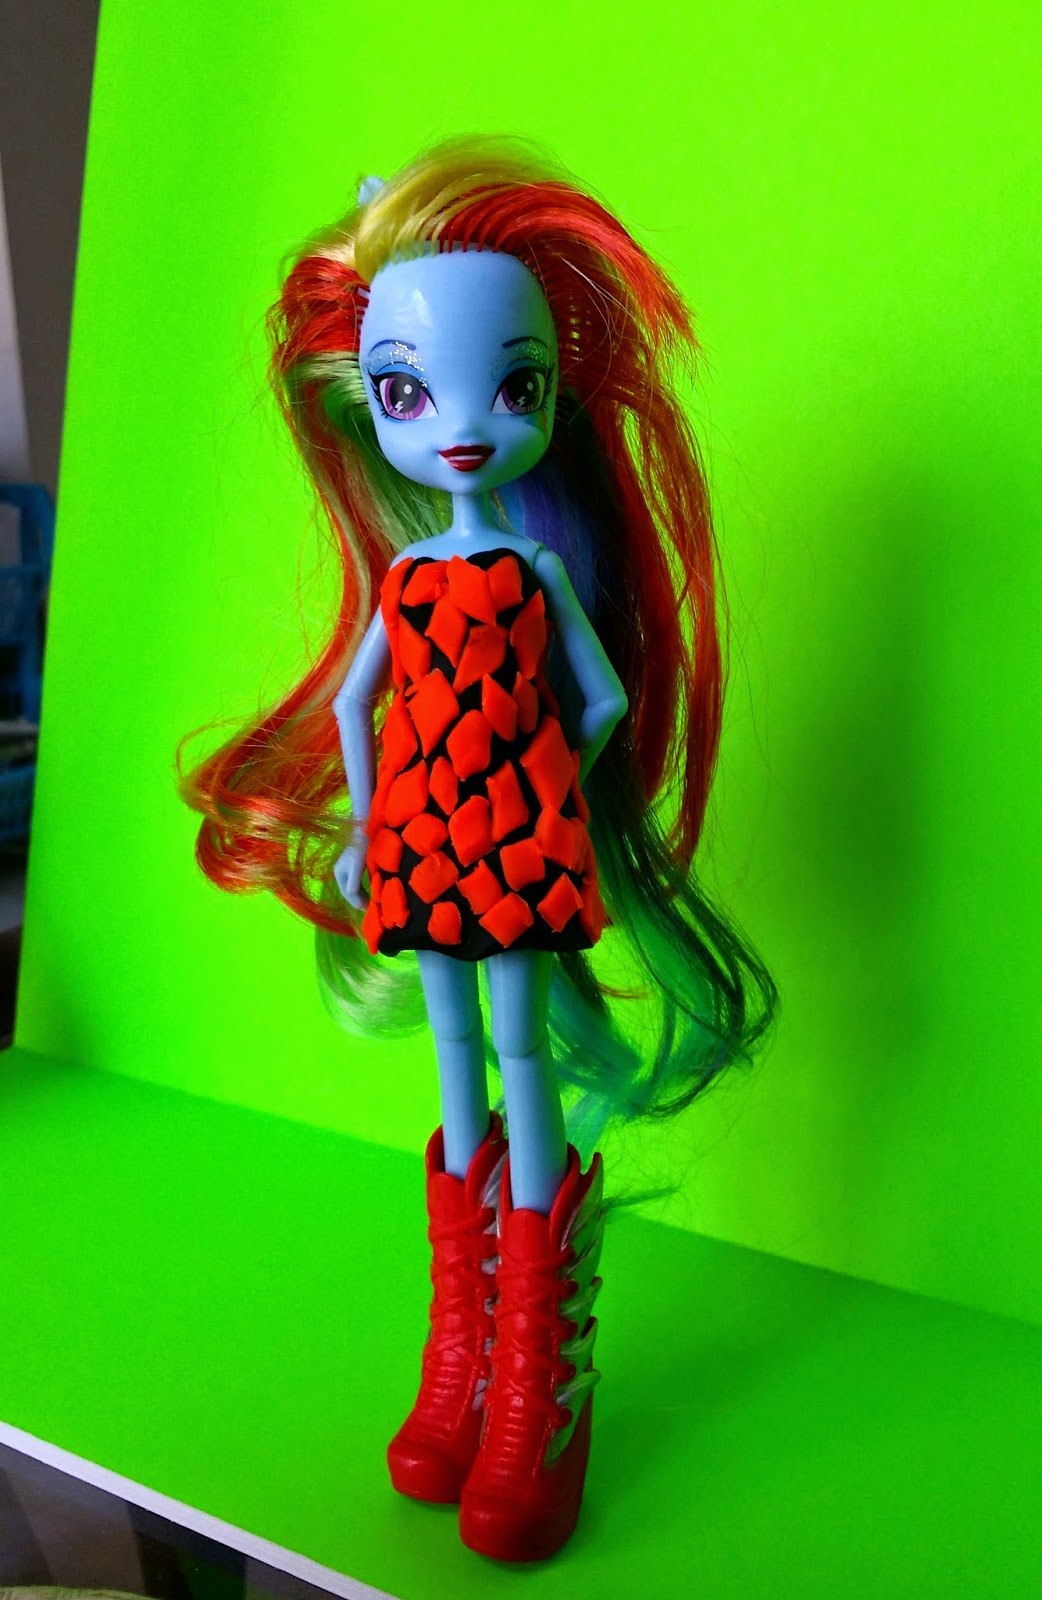 Play-Doh doll fashion